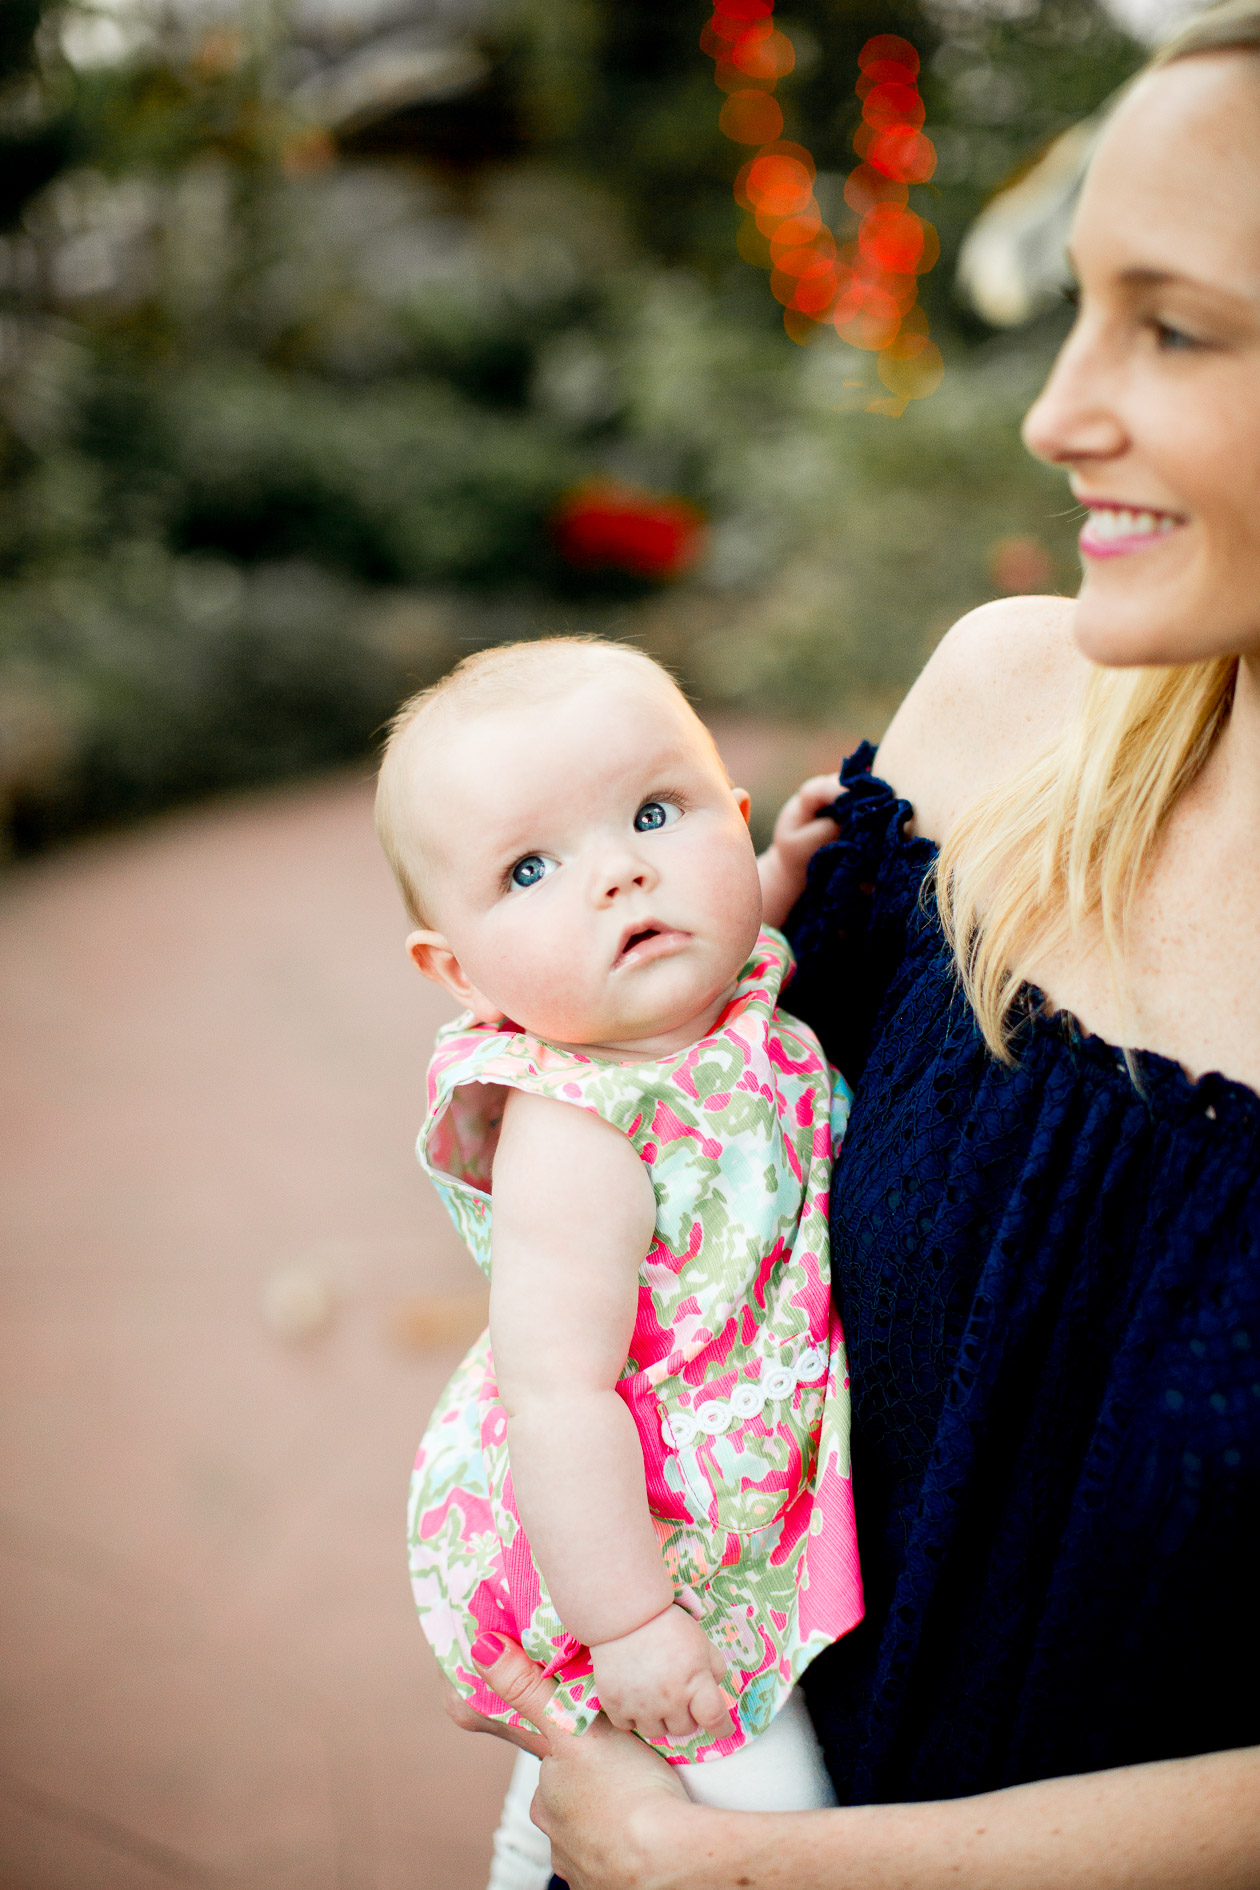 Baby Emma is wearing Lilly Pulitzer - Kelly in the City